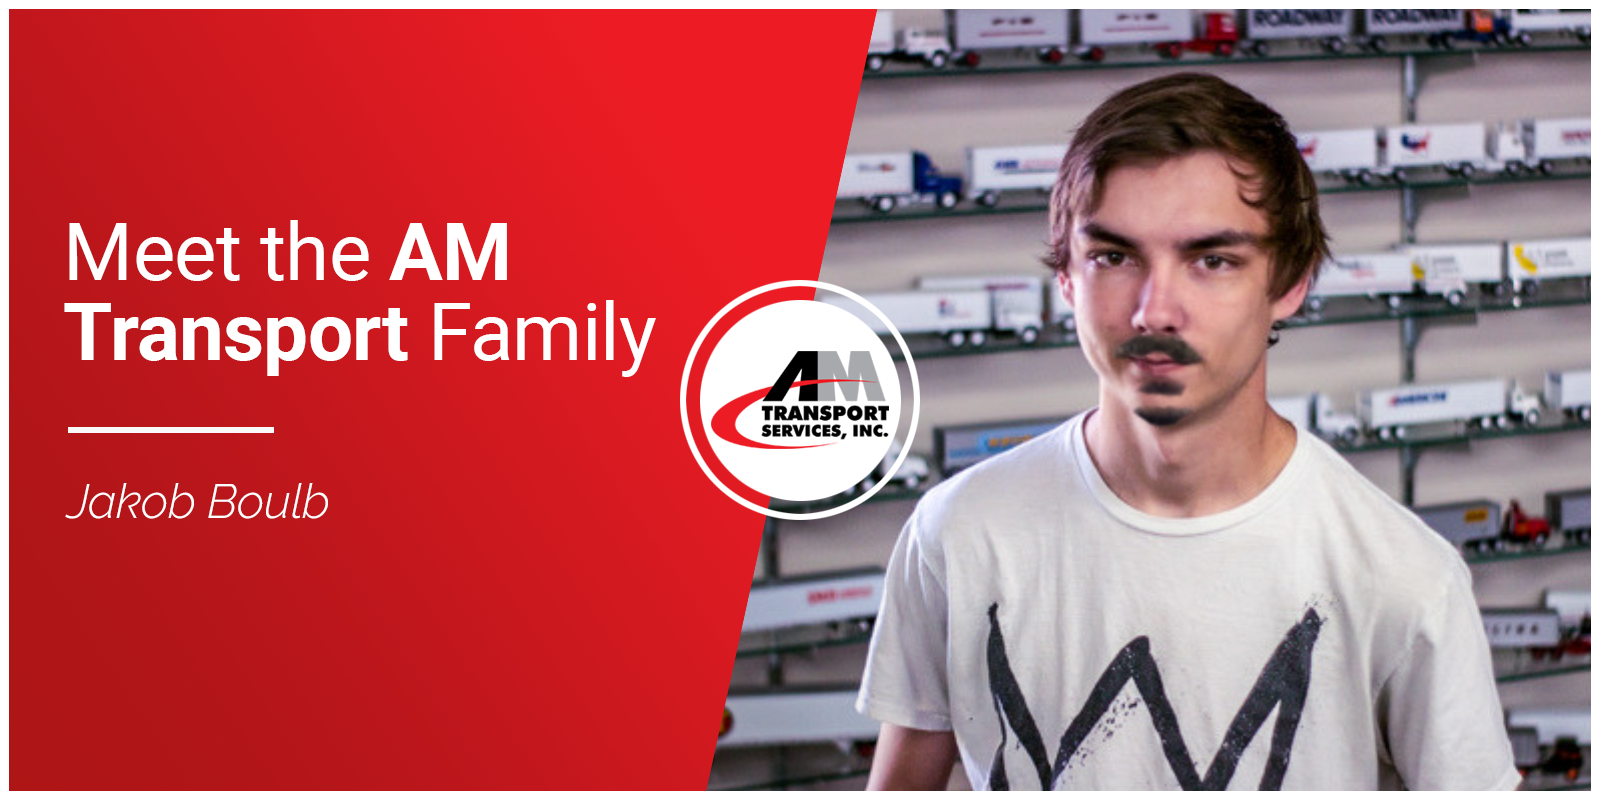 Picture of Jakob Boulb: Meet the AM Transport Family